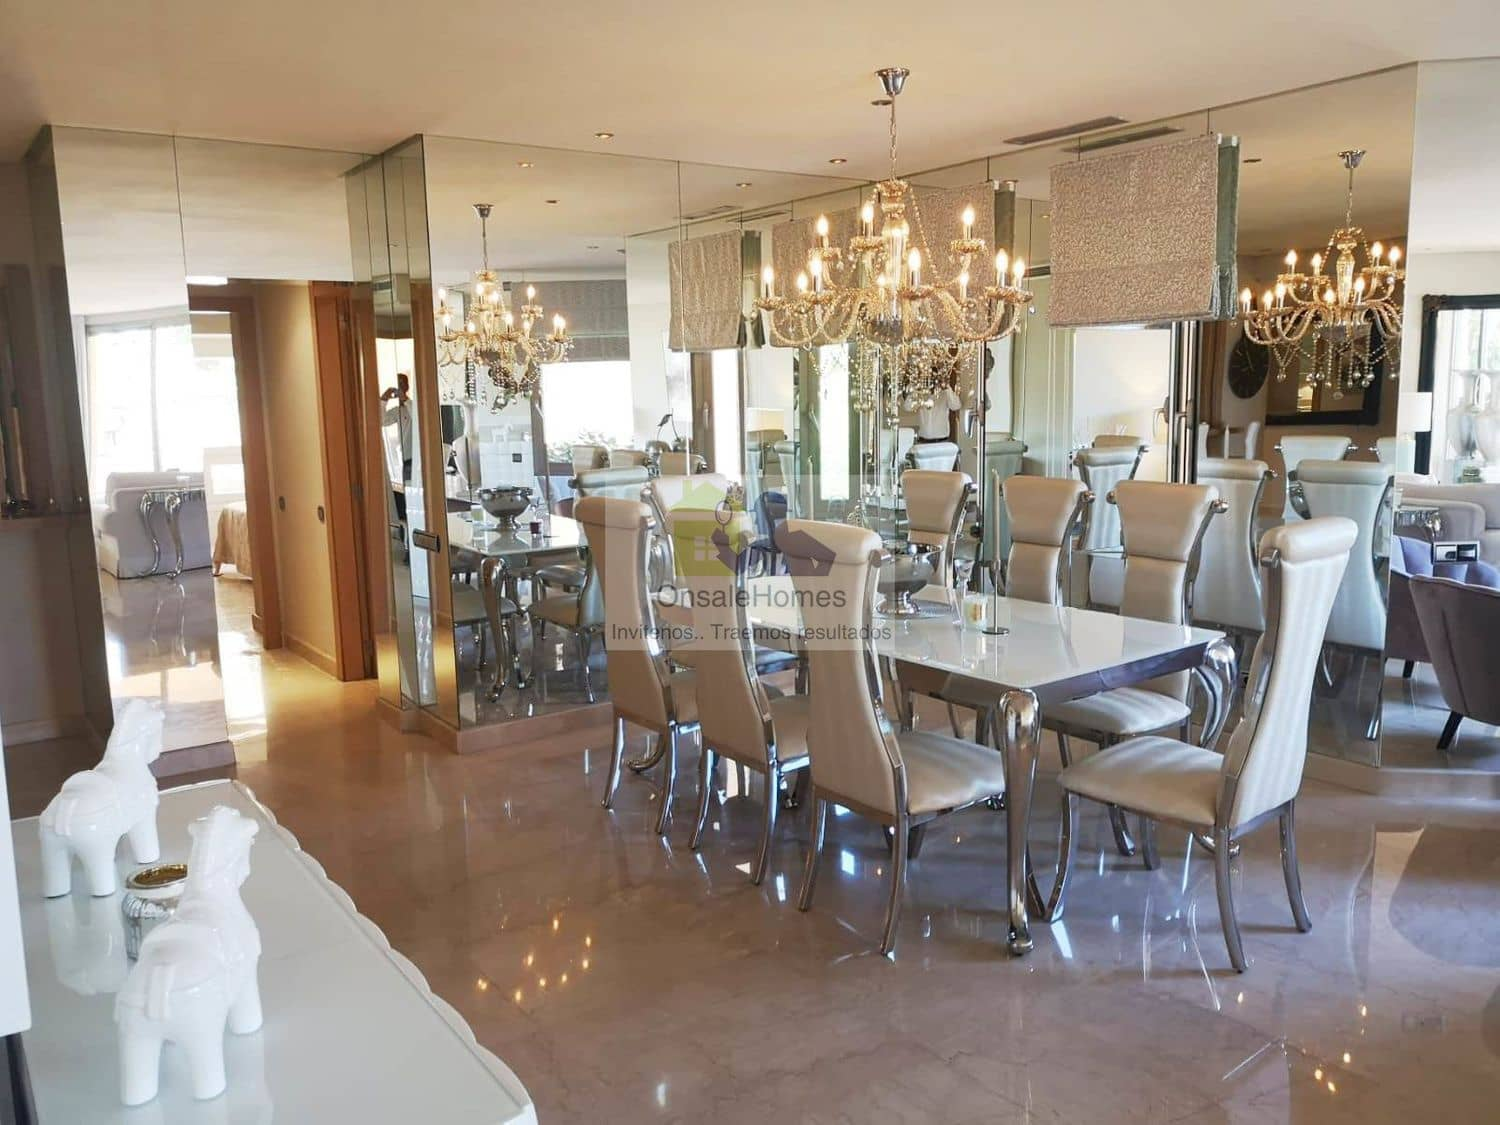 2 bedroom Apartment for sale in Marbella with garage - € 788,000 (Ref: 5164856)